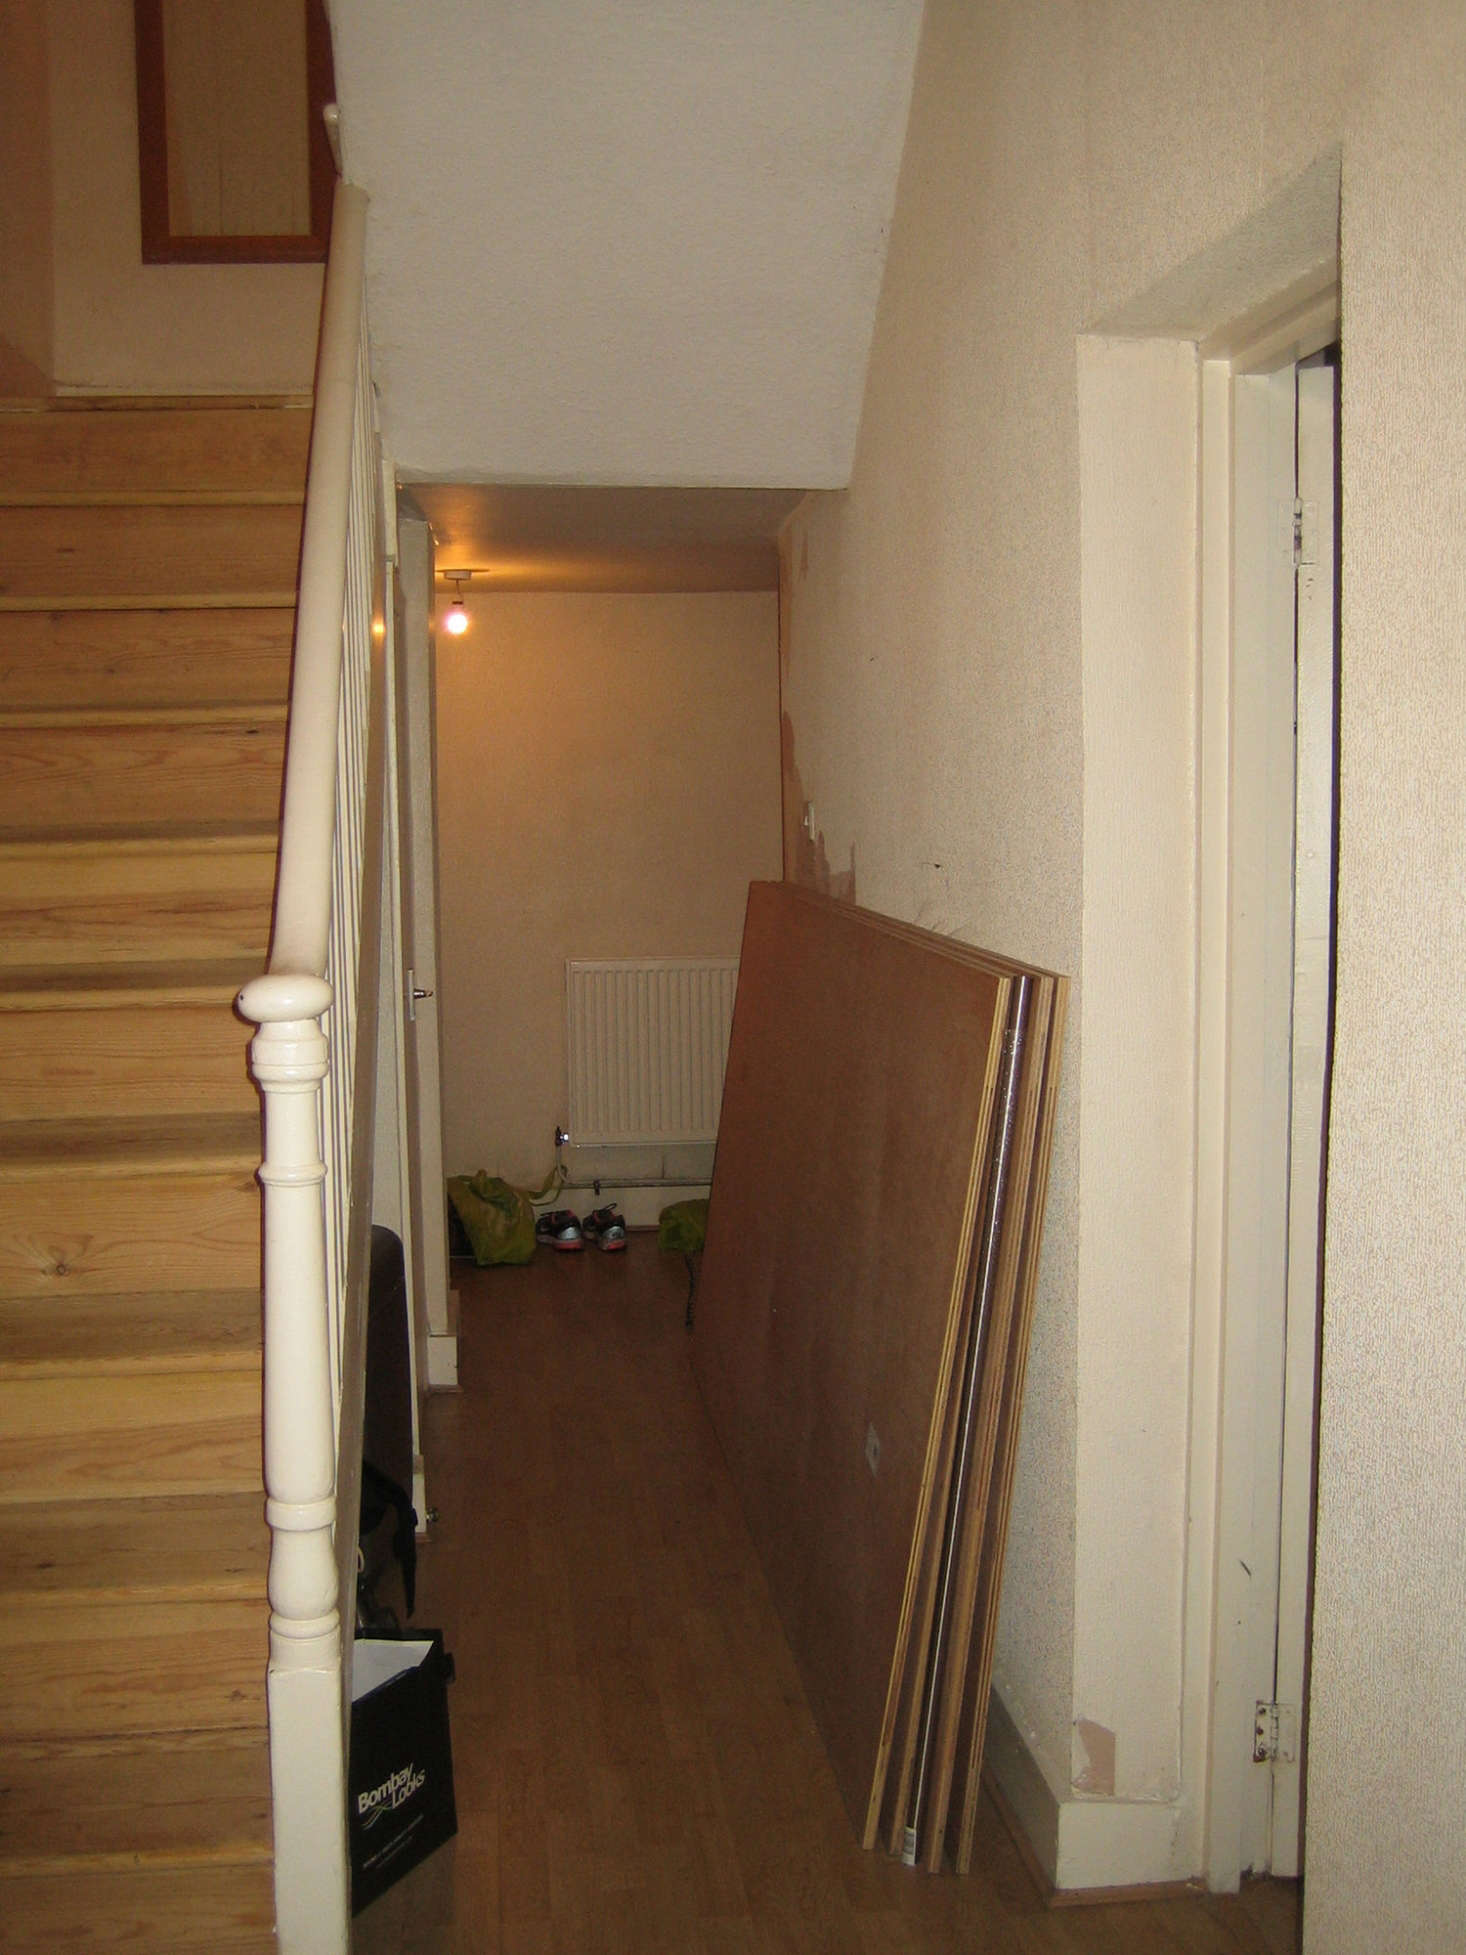 Pre-remodel, there was a narrow hall and rebuilt stair.